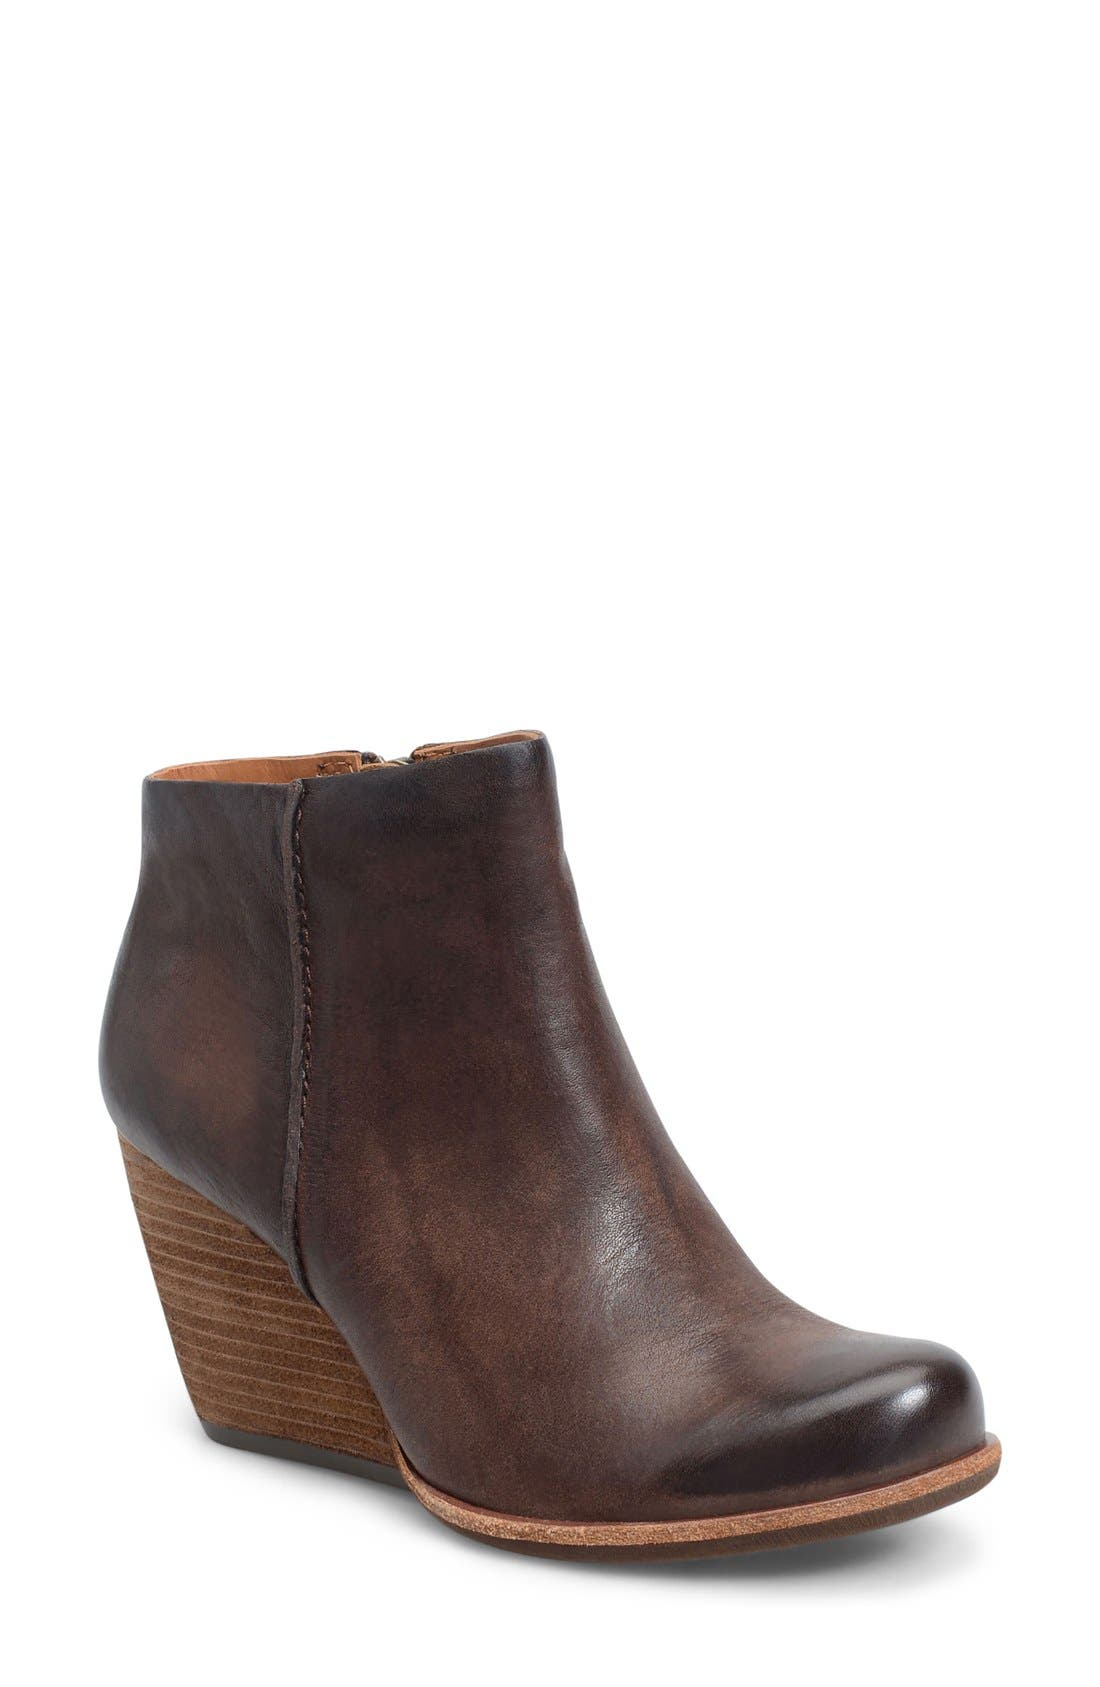 'Natalya' Burnished Leather Demi Wedge Boot,                         Main,                         color, Dark Brown